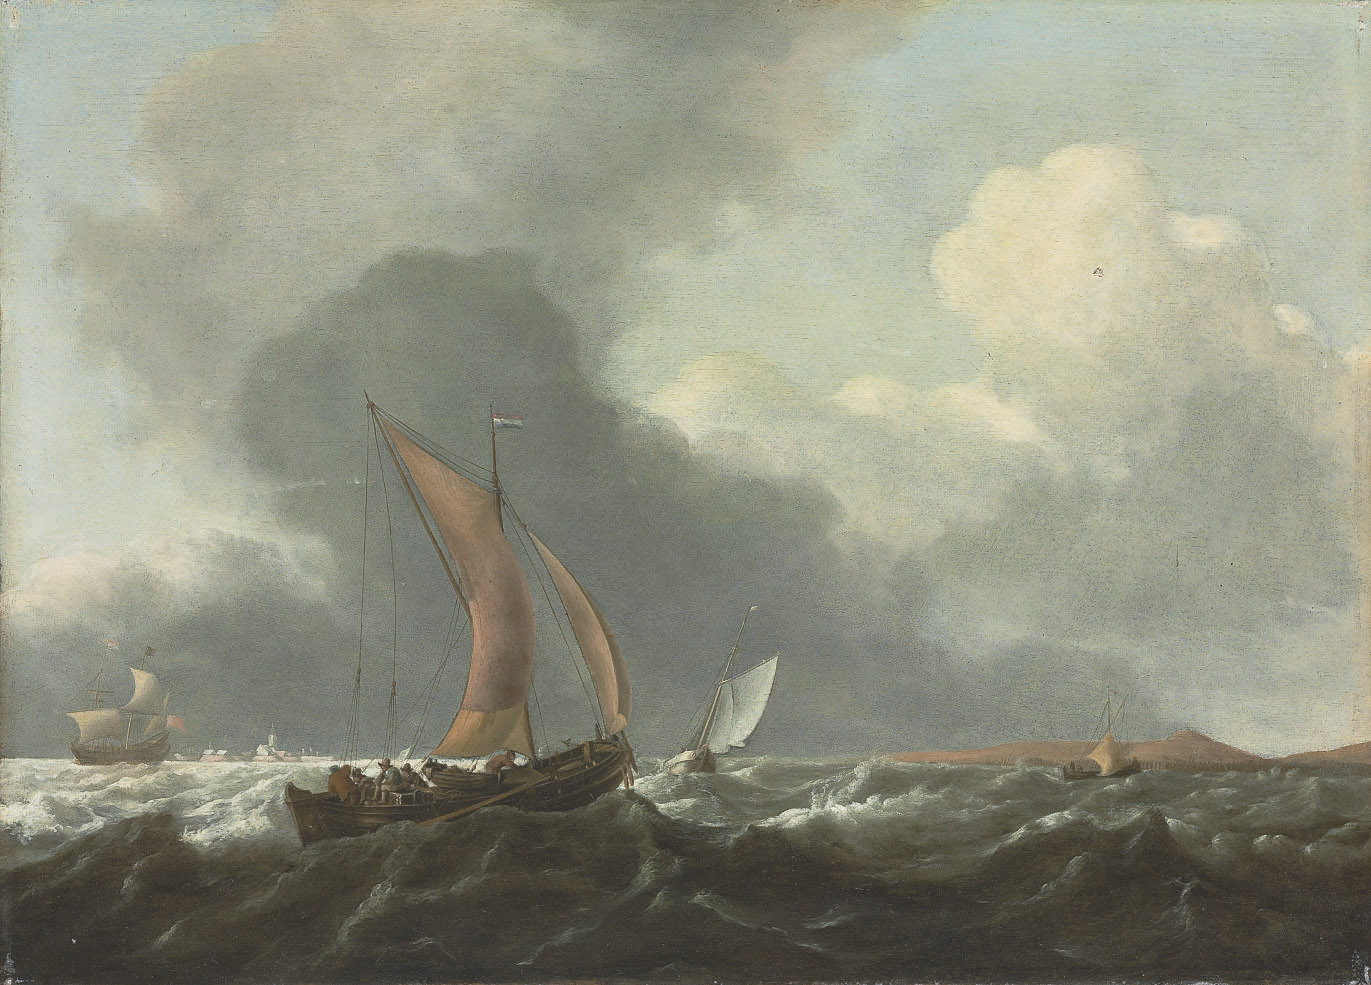 Dutch ships in stormy waters